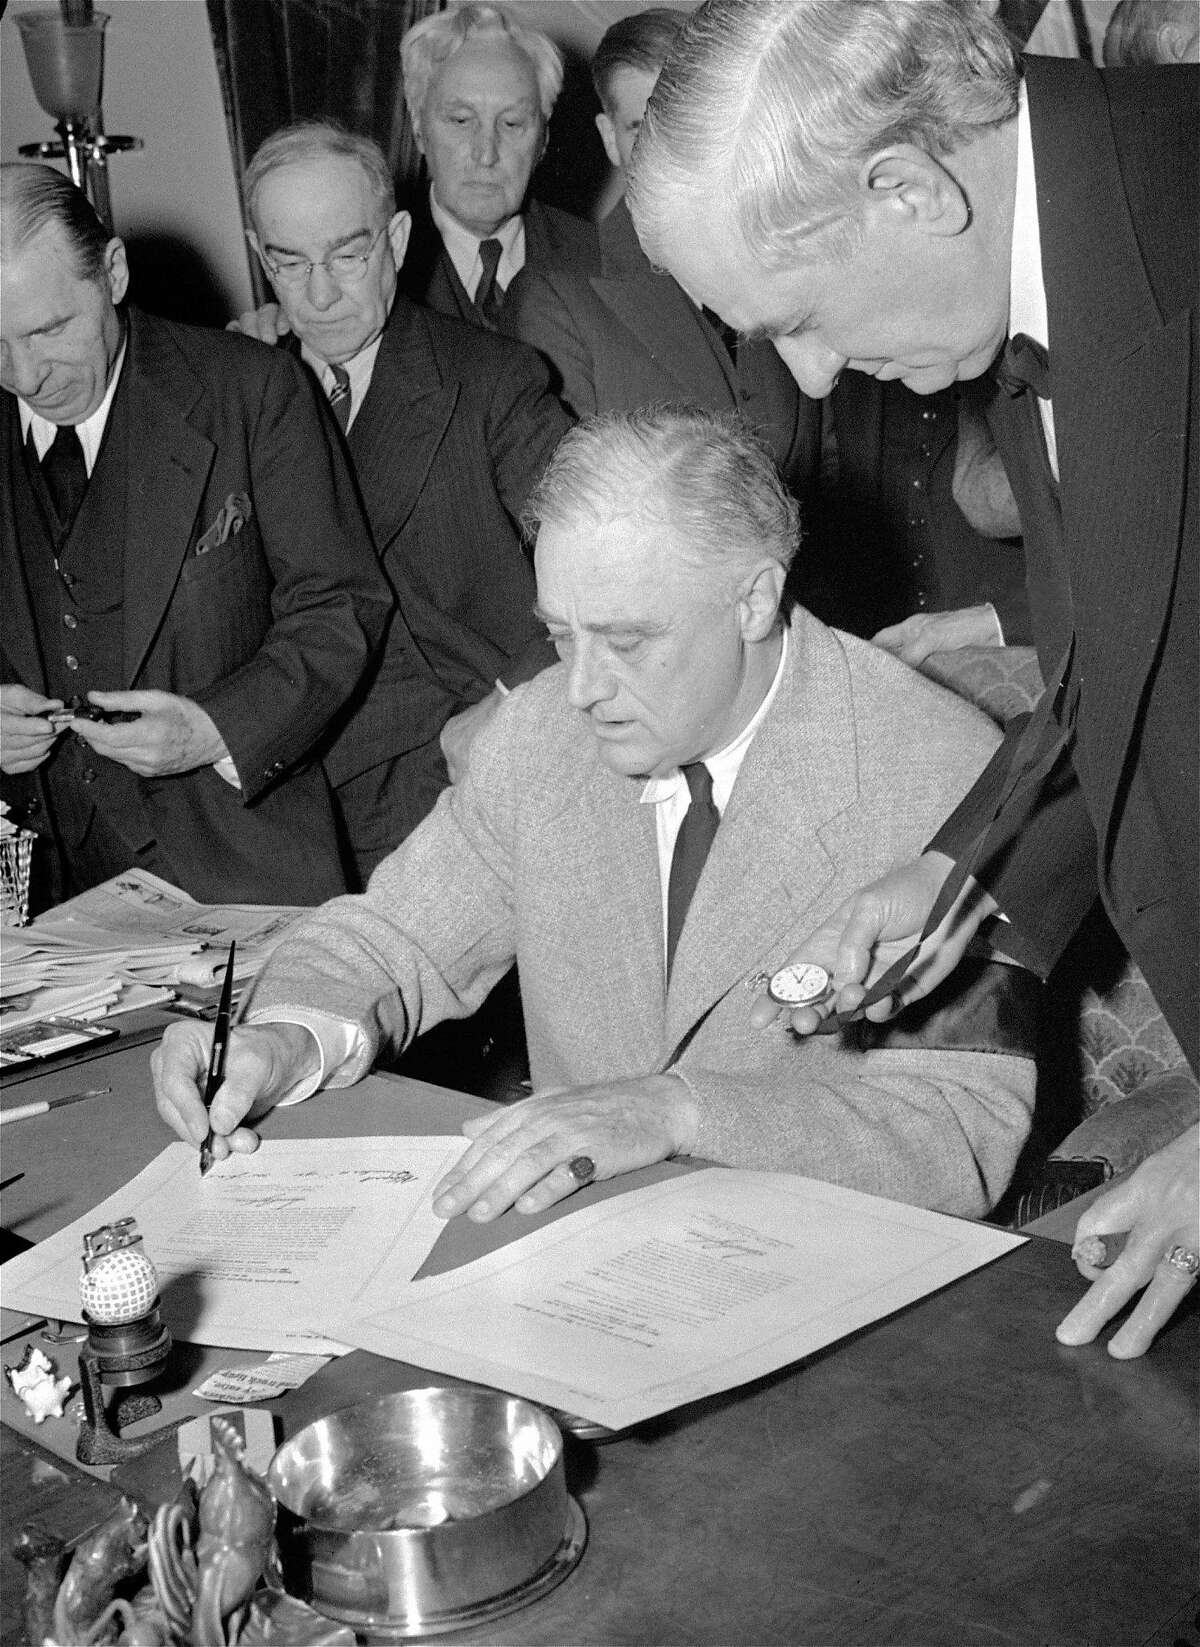 President Franklin Roosevelt signing declaration of war against Germany at the White House December 11, 1941 at 3:08 p.m. EST. From left to right: Rep. Sol Bloom; Rep. Luther Johnson; Rep. John Eaton; President Roosevelt; and Sen. Tom Connally. (AP Photo)